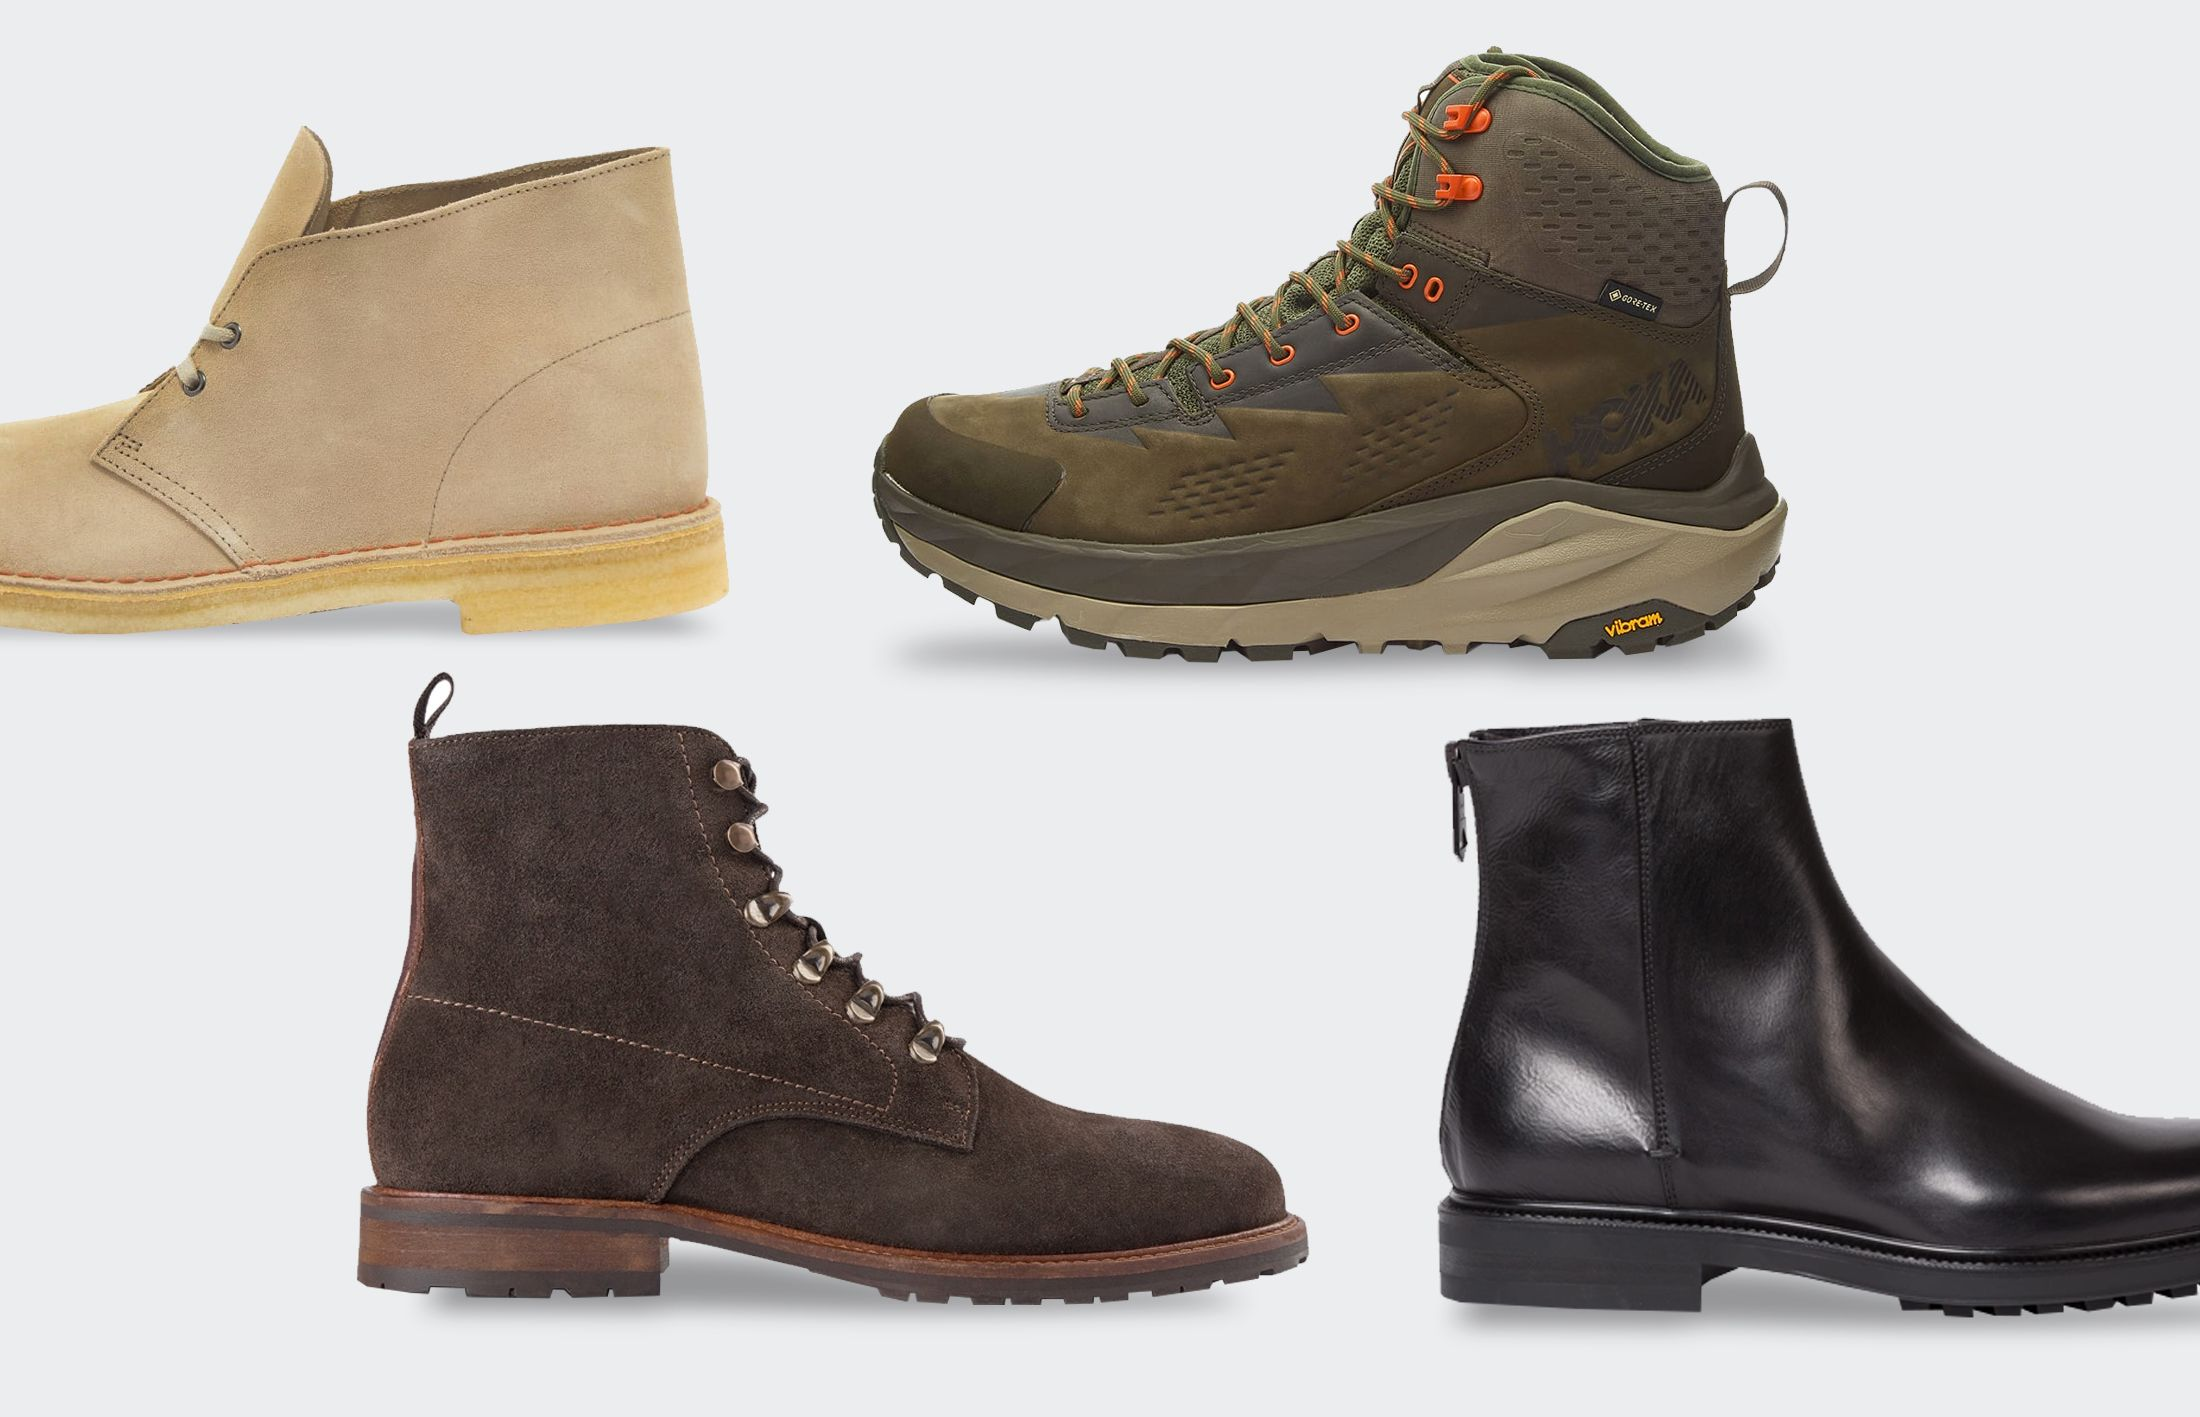 Four of the best boots for your chosen budget